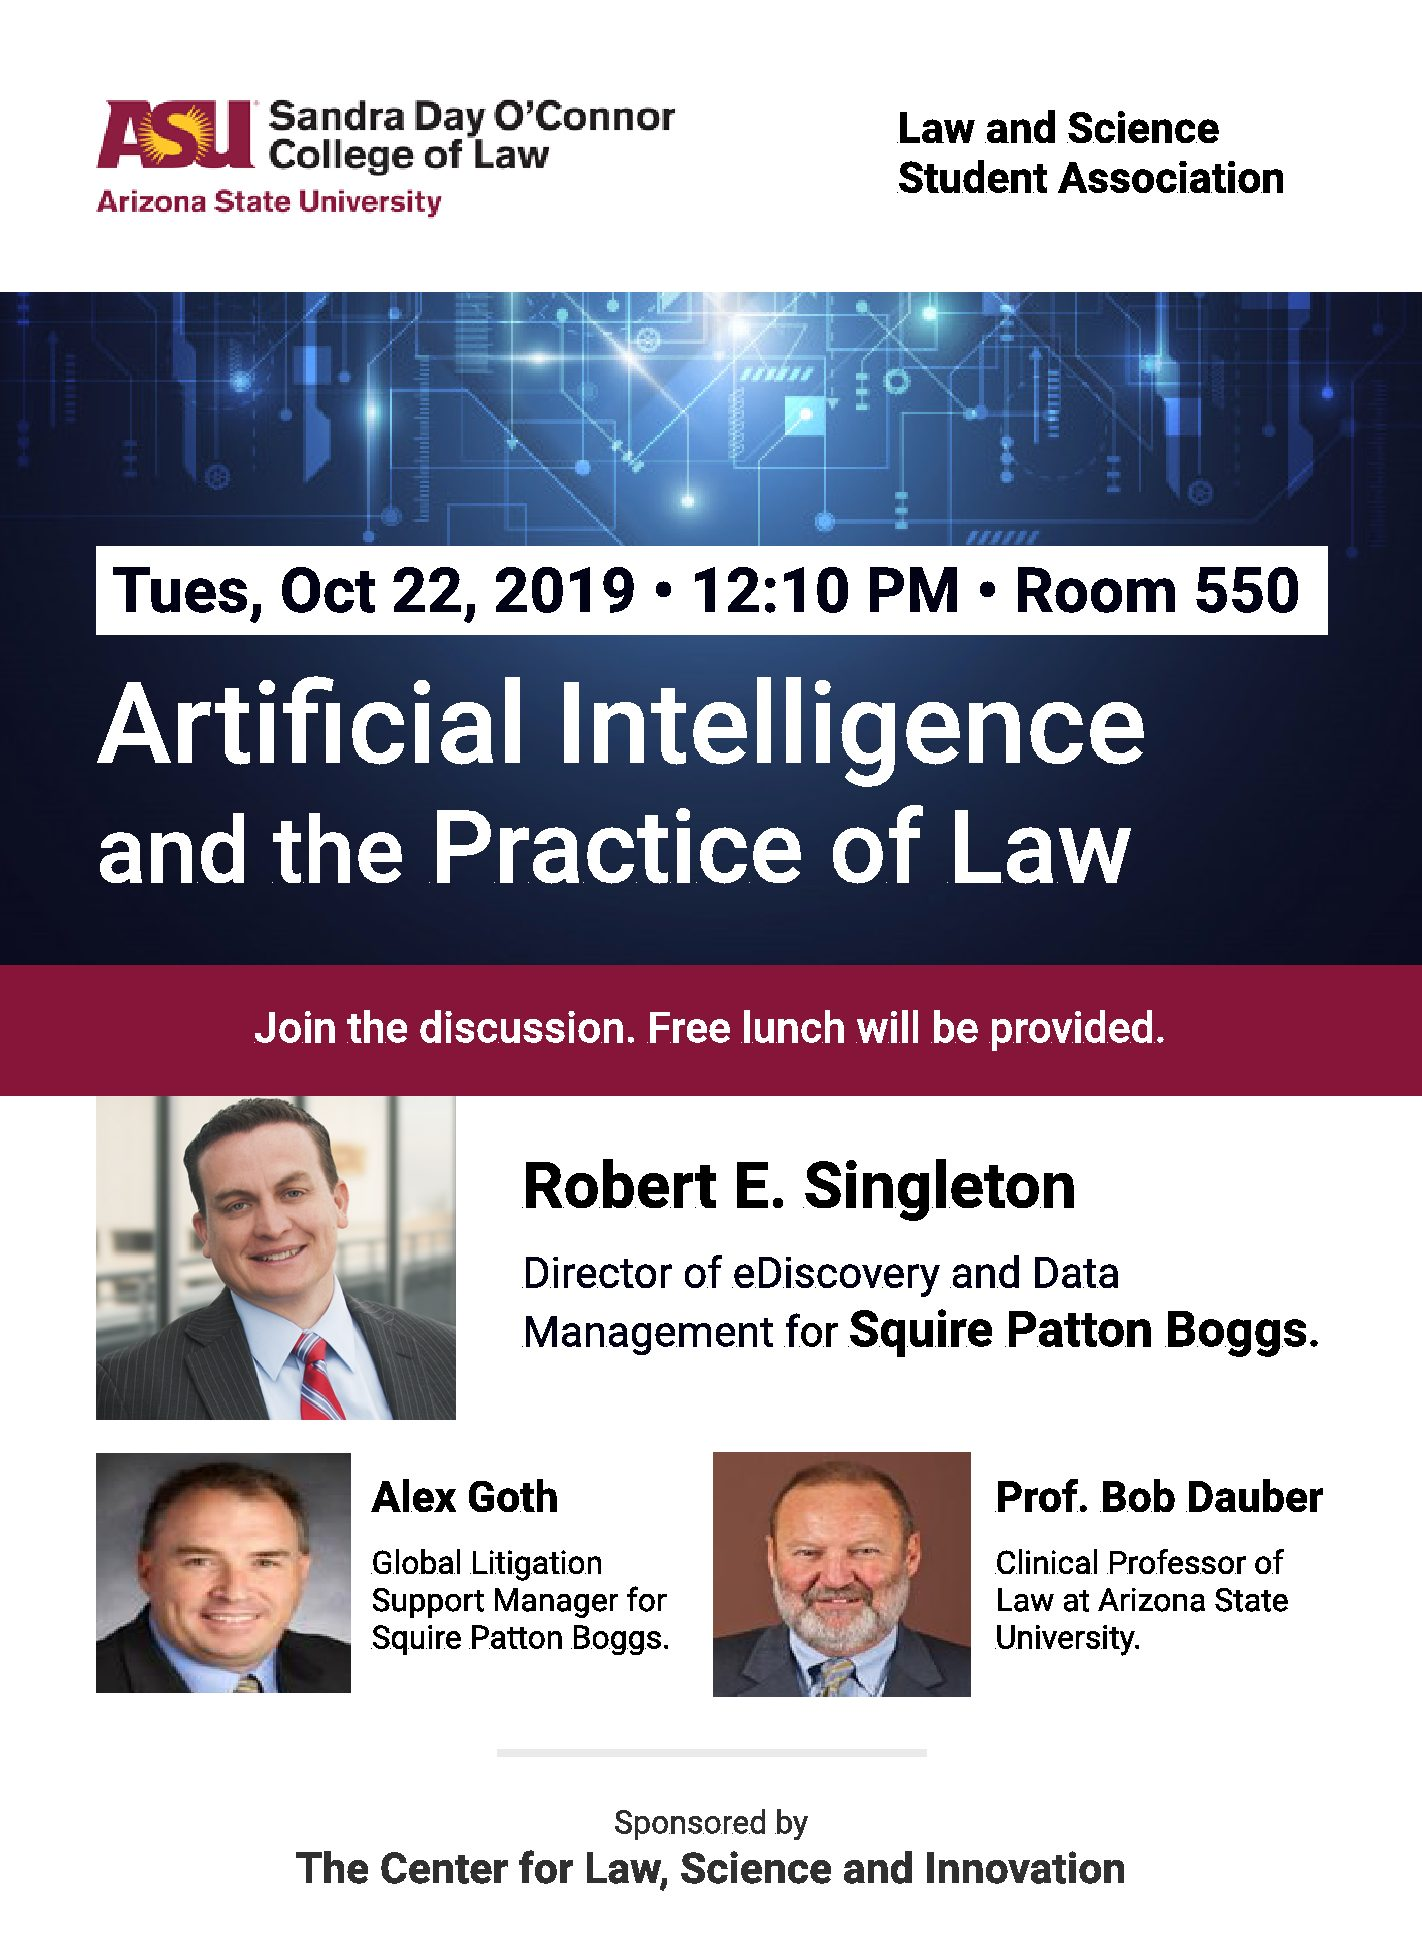 AI and the Practice of Law Lunch Discussion, Tues., Oct. 22nd, RM 550, by LASSA and LSI